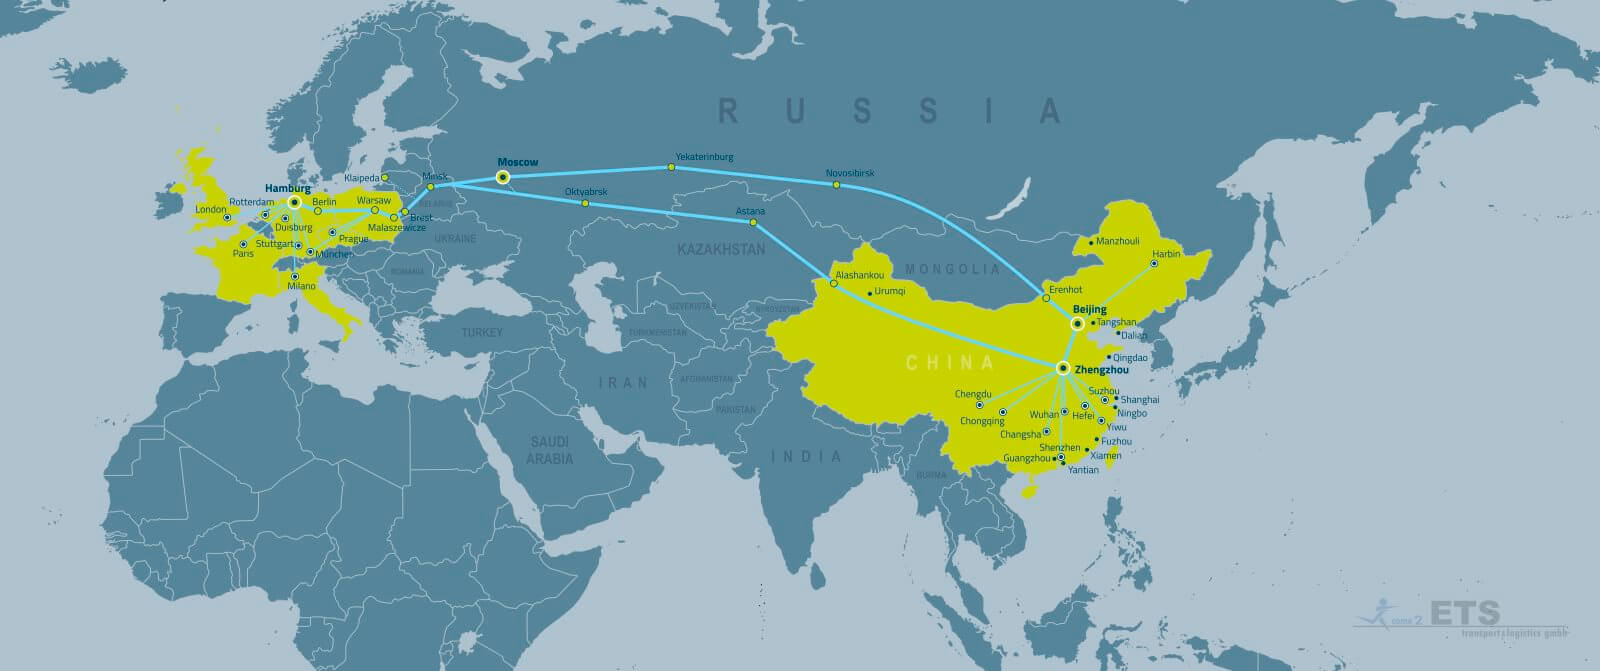 ETS China Rail Service route itinerary